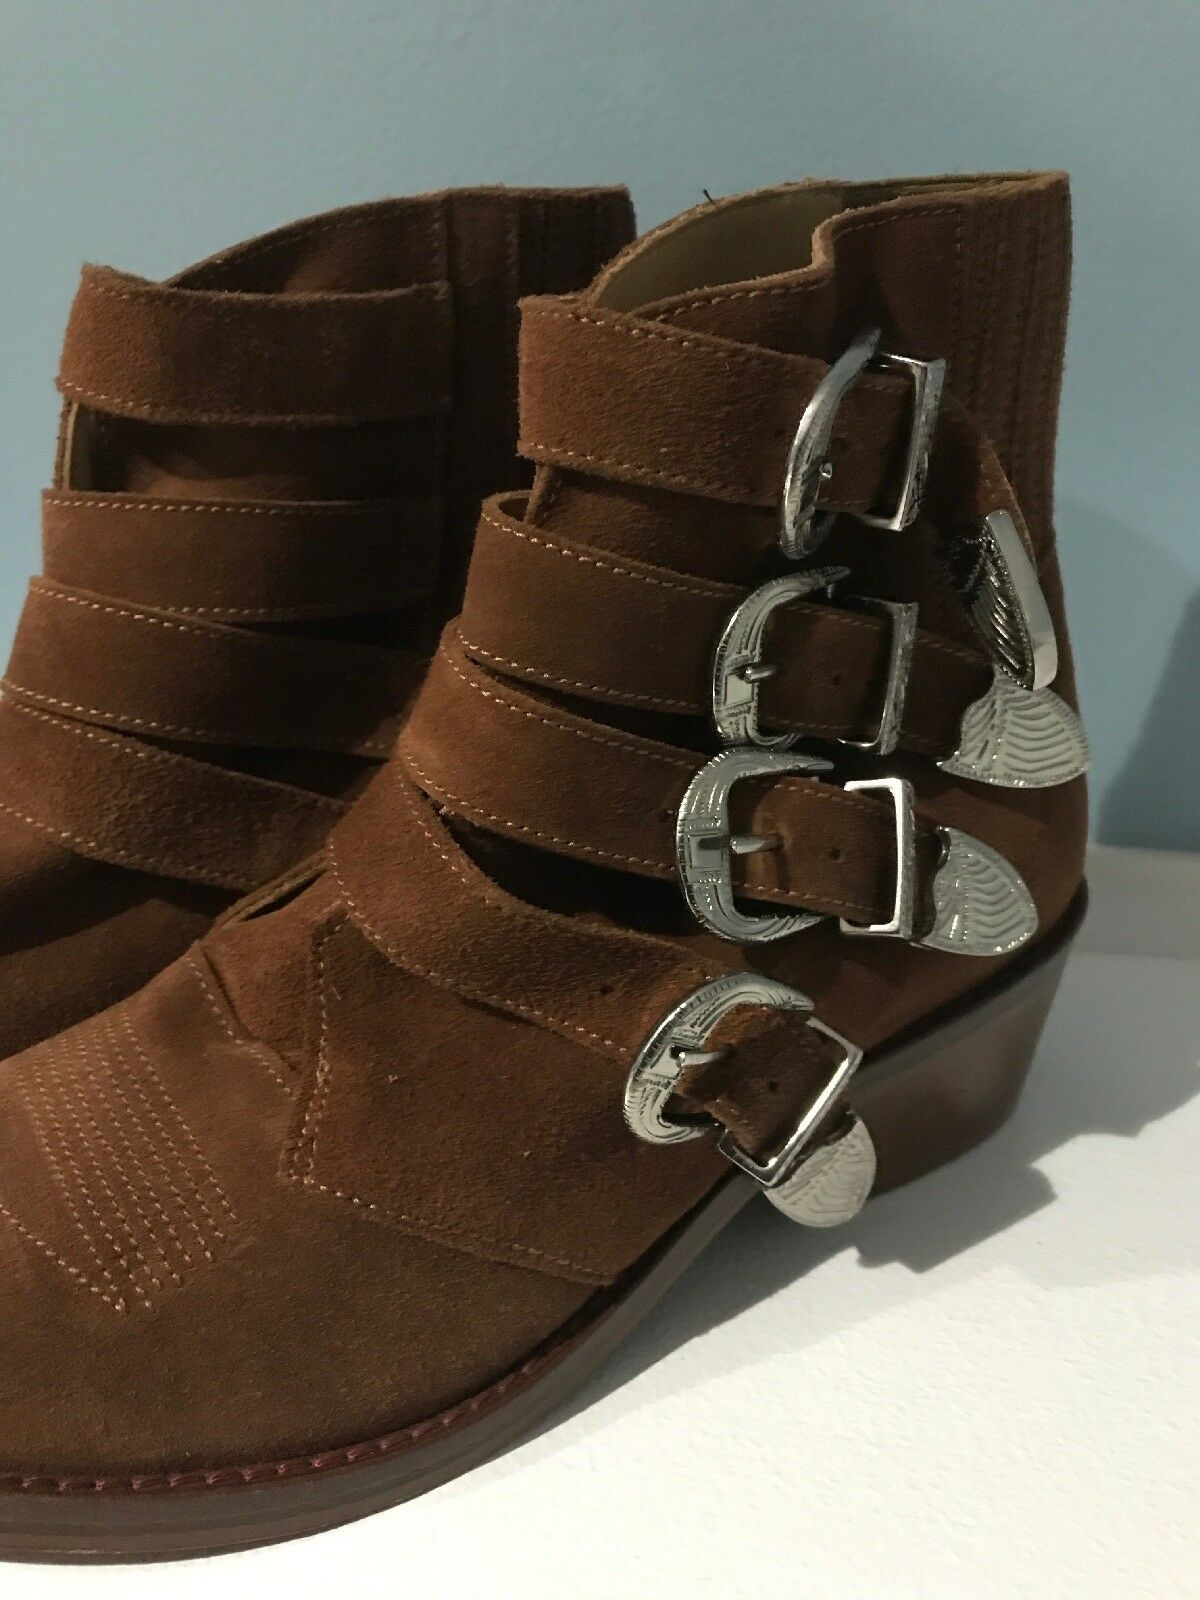 NEW  480 TOGA PULLA 4-BUCKLE TAN TAN TAN SUEDE BOOTIE - Size 36 Boots db8a36